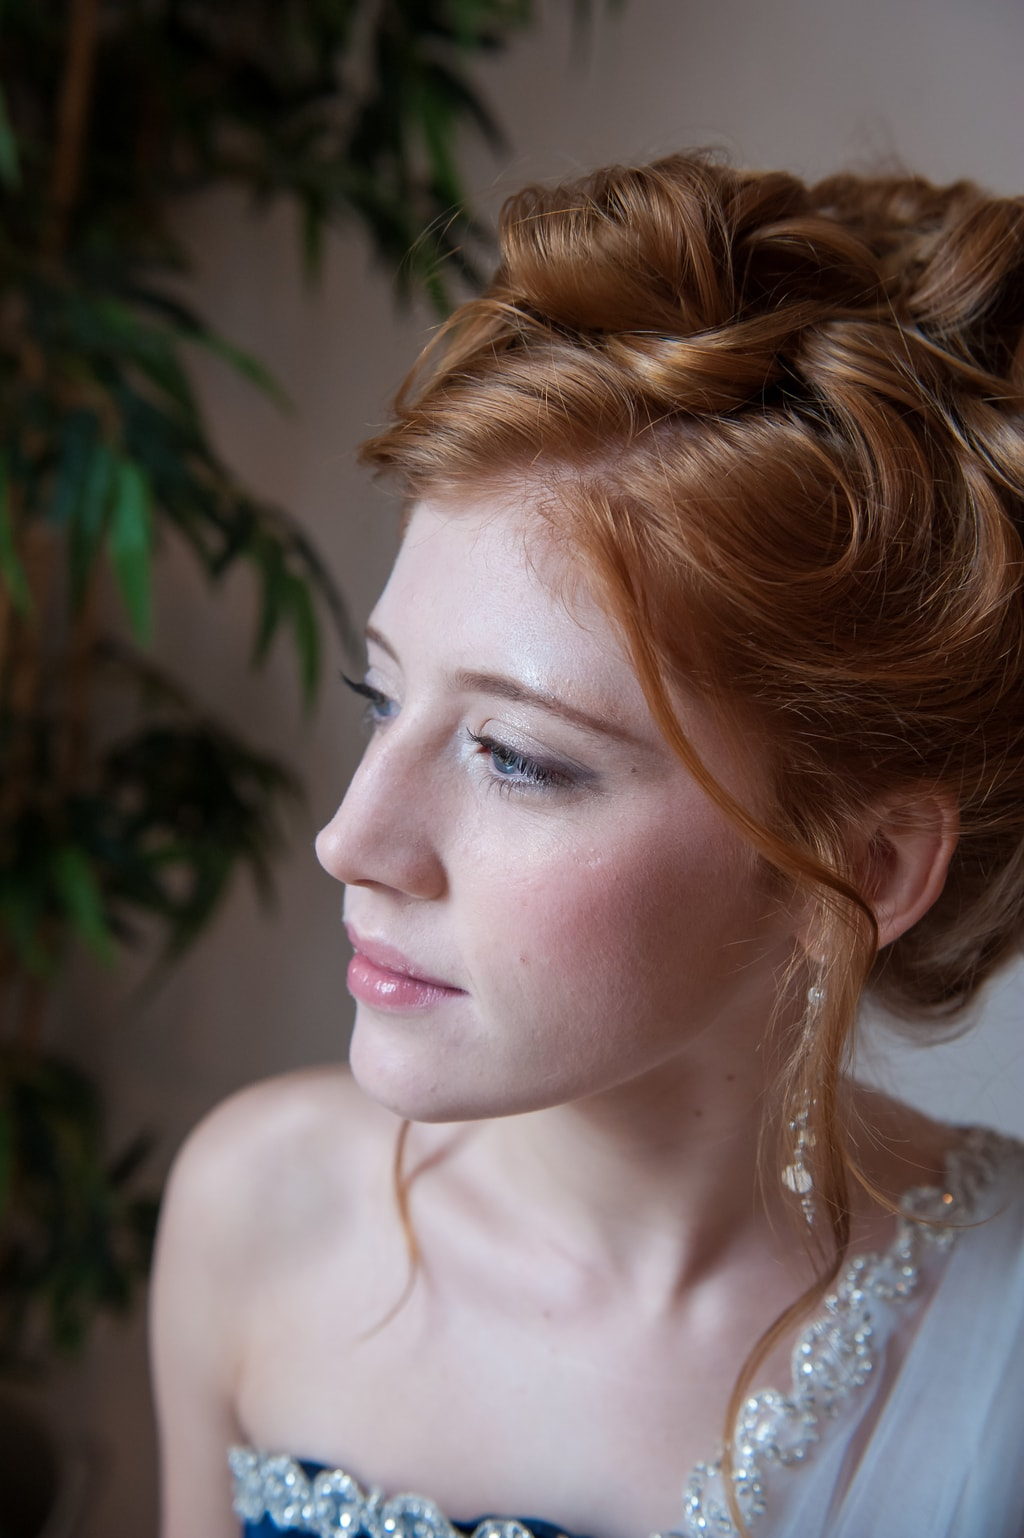 celestial isnpired wedding, beauty look by retromorphosist, kat forsyth photography